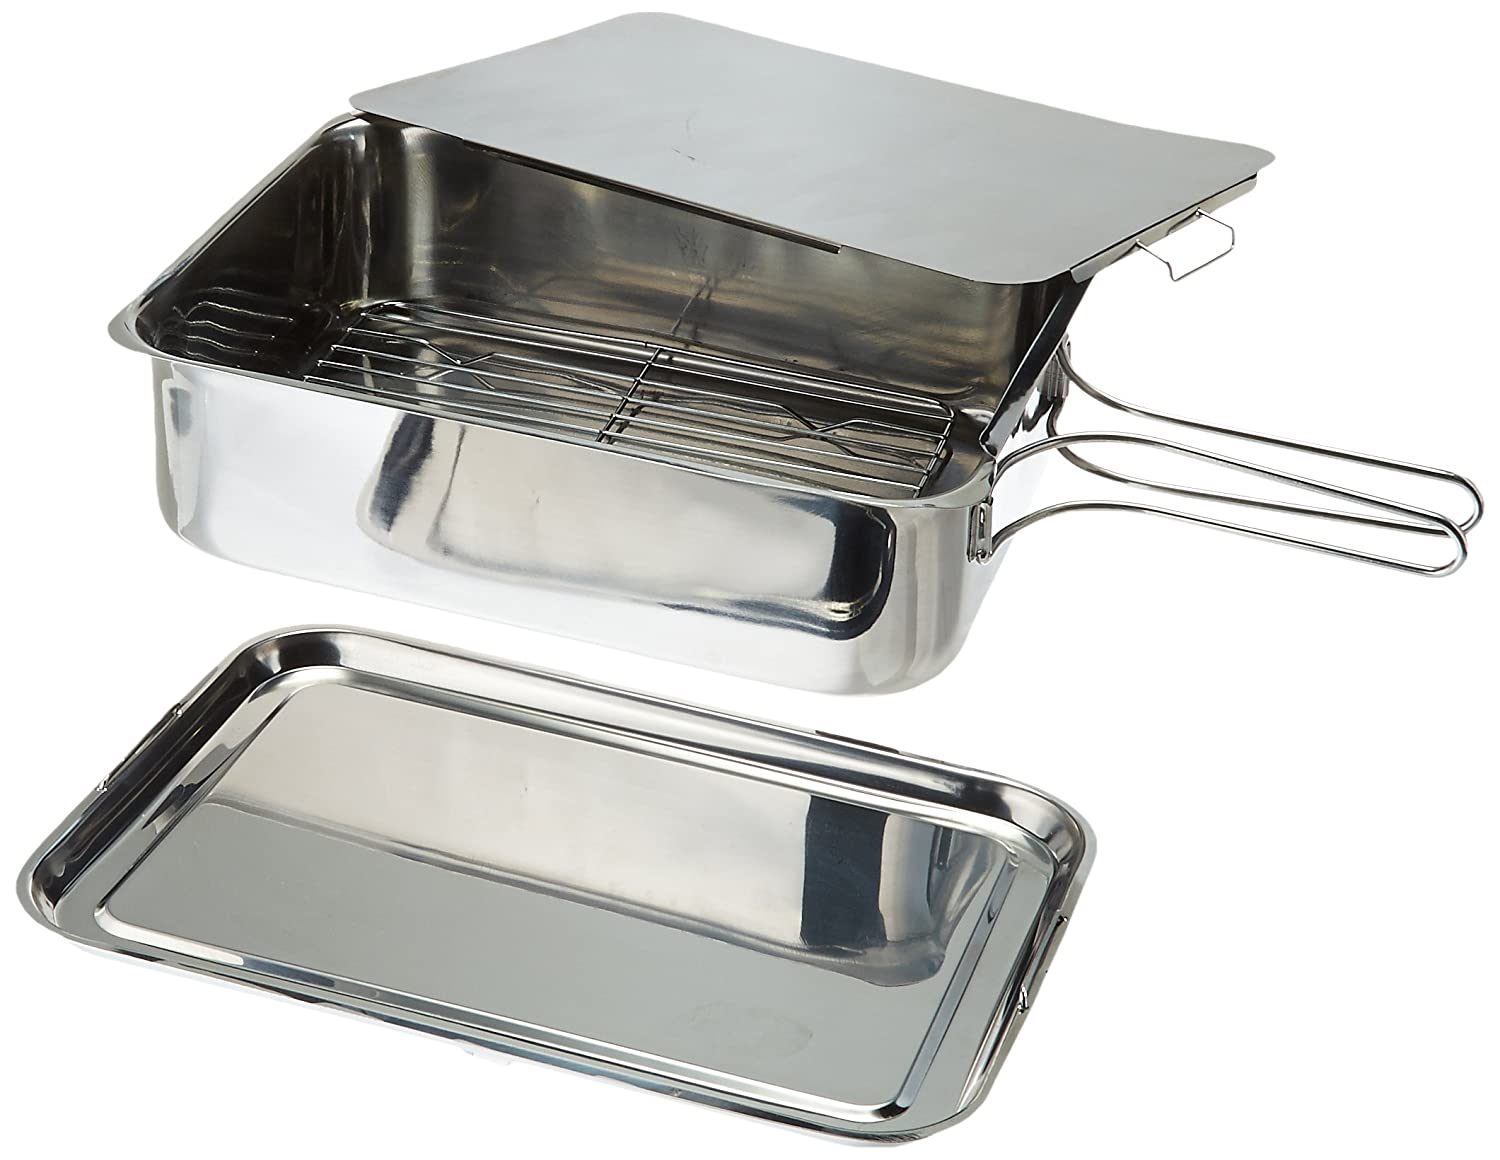 "ExcelSteel Stainless Steel Stovetop Smoker, 14 1/2"" X 10 1/2"" X 4"", Silver"